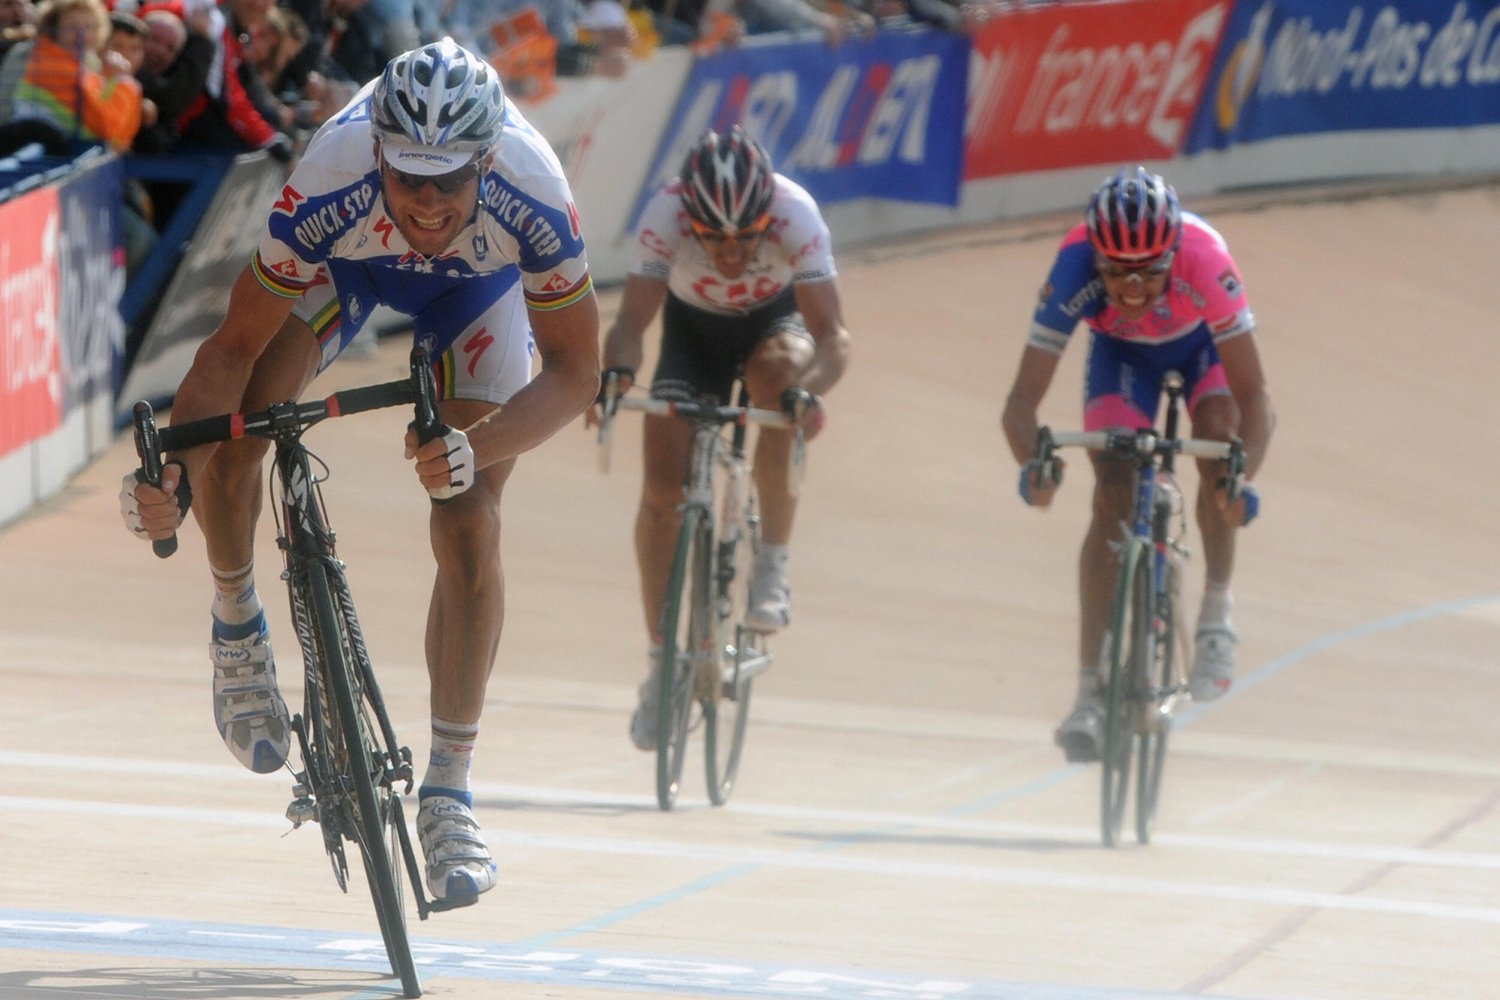 "Tom Boonen sprints for the second of his record-tying four wins in this race, in 2008. That sprint finish in the Roubaix velodrome kicked off the sublime rivalry between Boonen and Fabian Cancellara, seen here digging for second. Between them, ""Tommeke"" and ""Spartacus"" have won the seven of the last nine editions of this race."